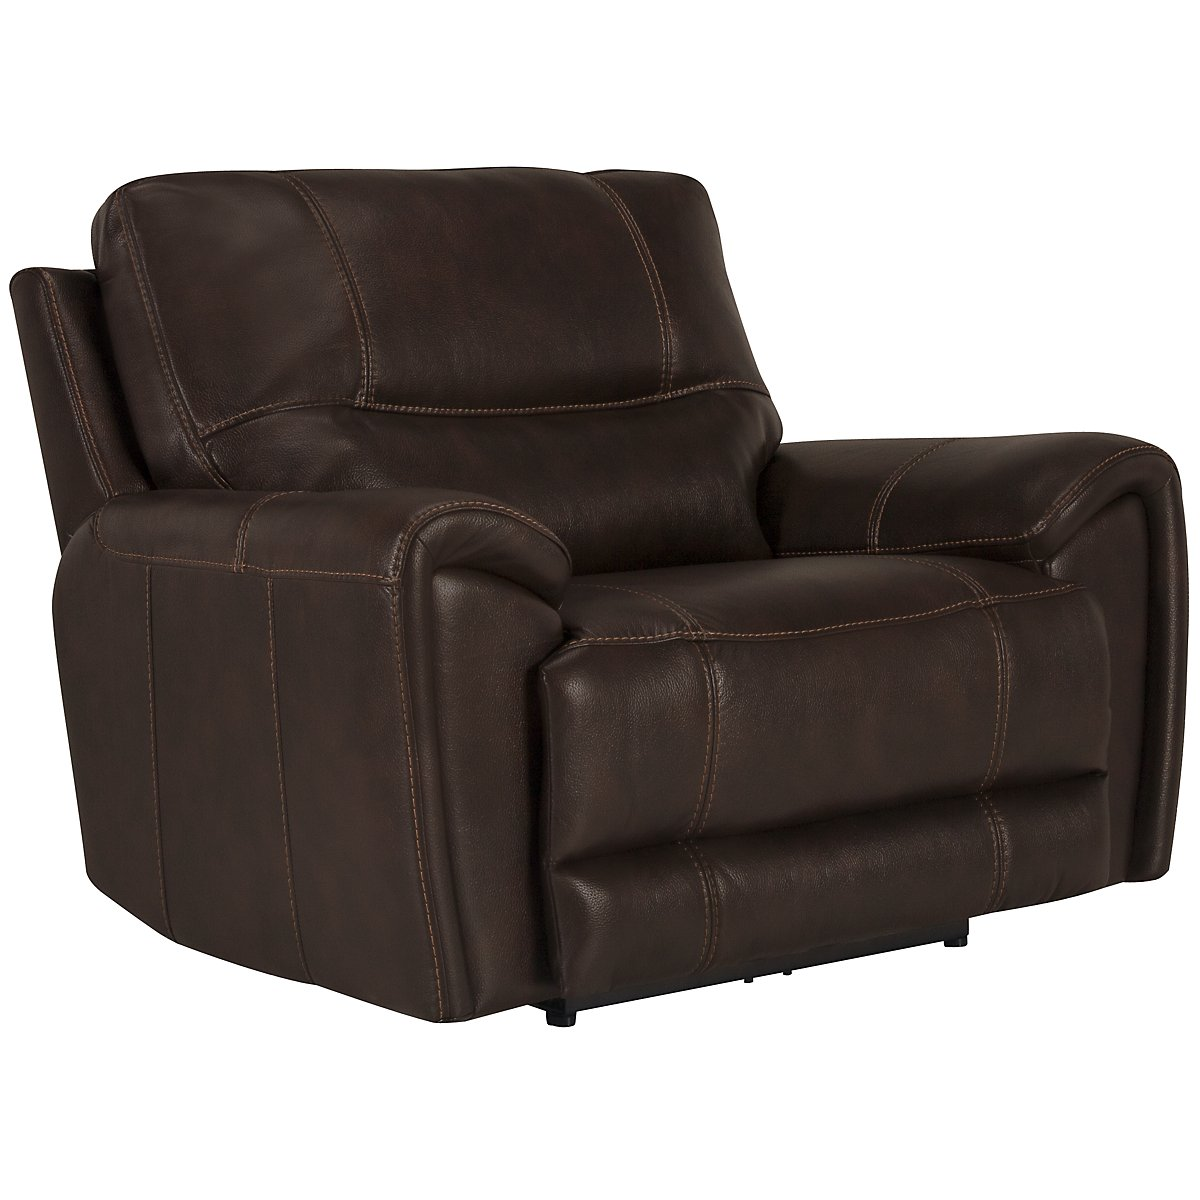 Nico Dark Brown Microfiber Power Recliner